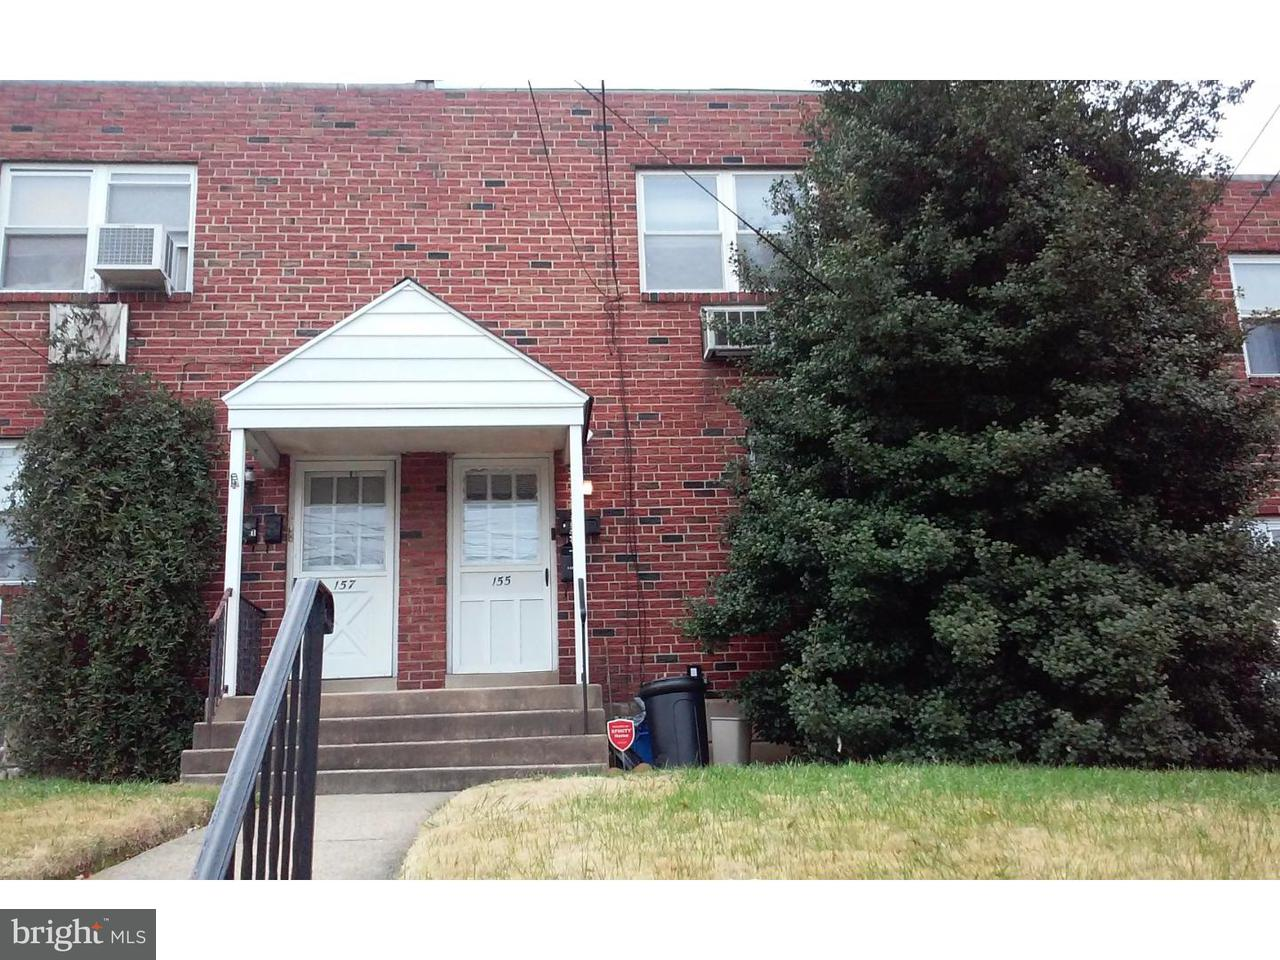 Townhouse for Rent at 155 BURMONT RD #2ND FL Drexel Hill, Pennsylvania 19026 United States